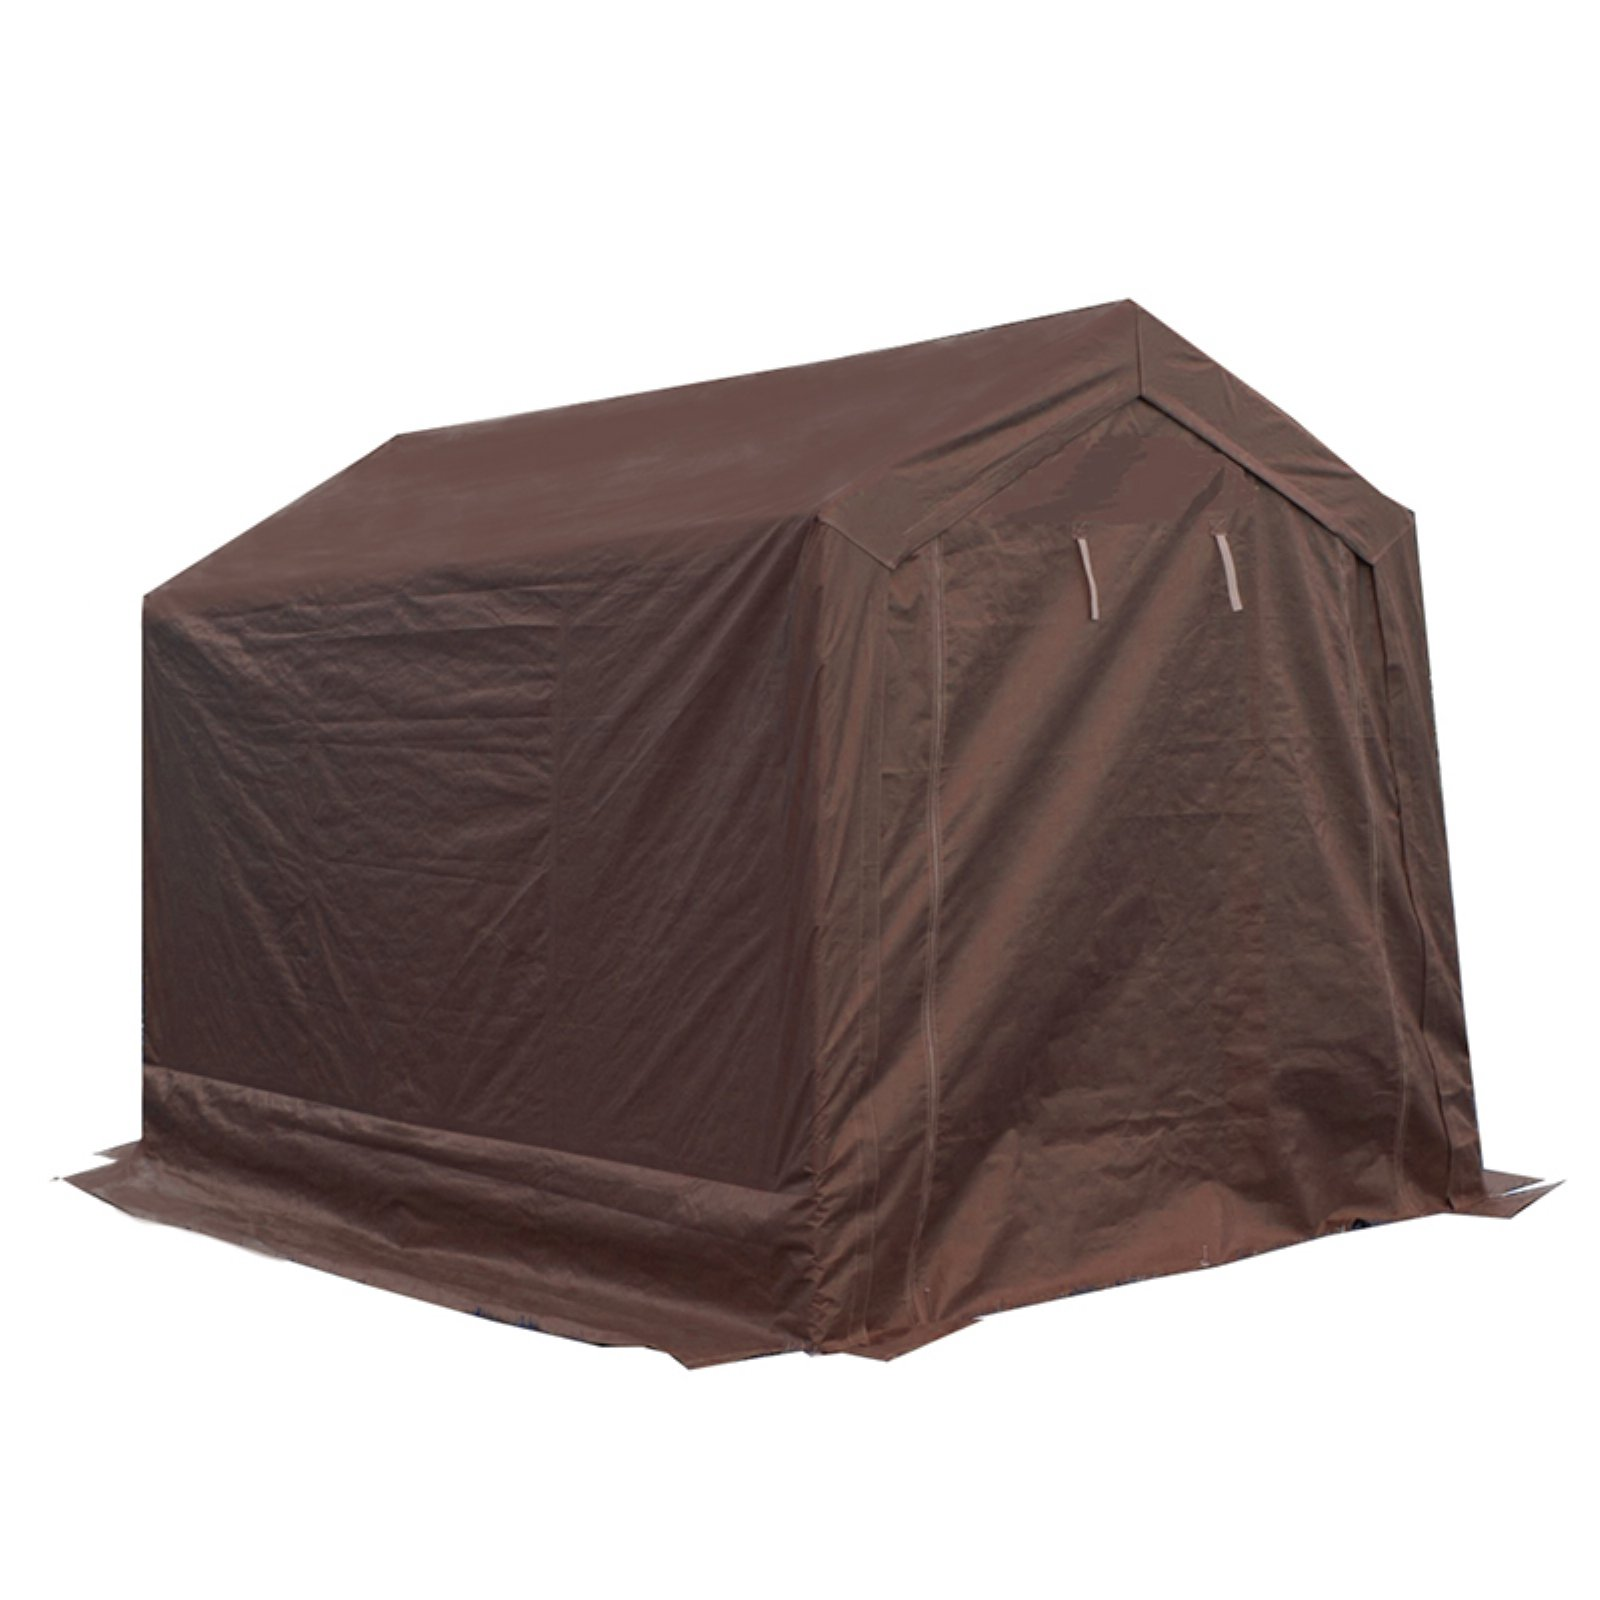 King Canopy 7 x 12 ft. 6 Leg Canopy Storage Shed